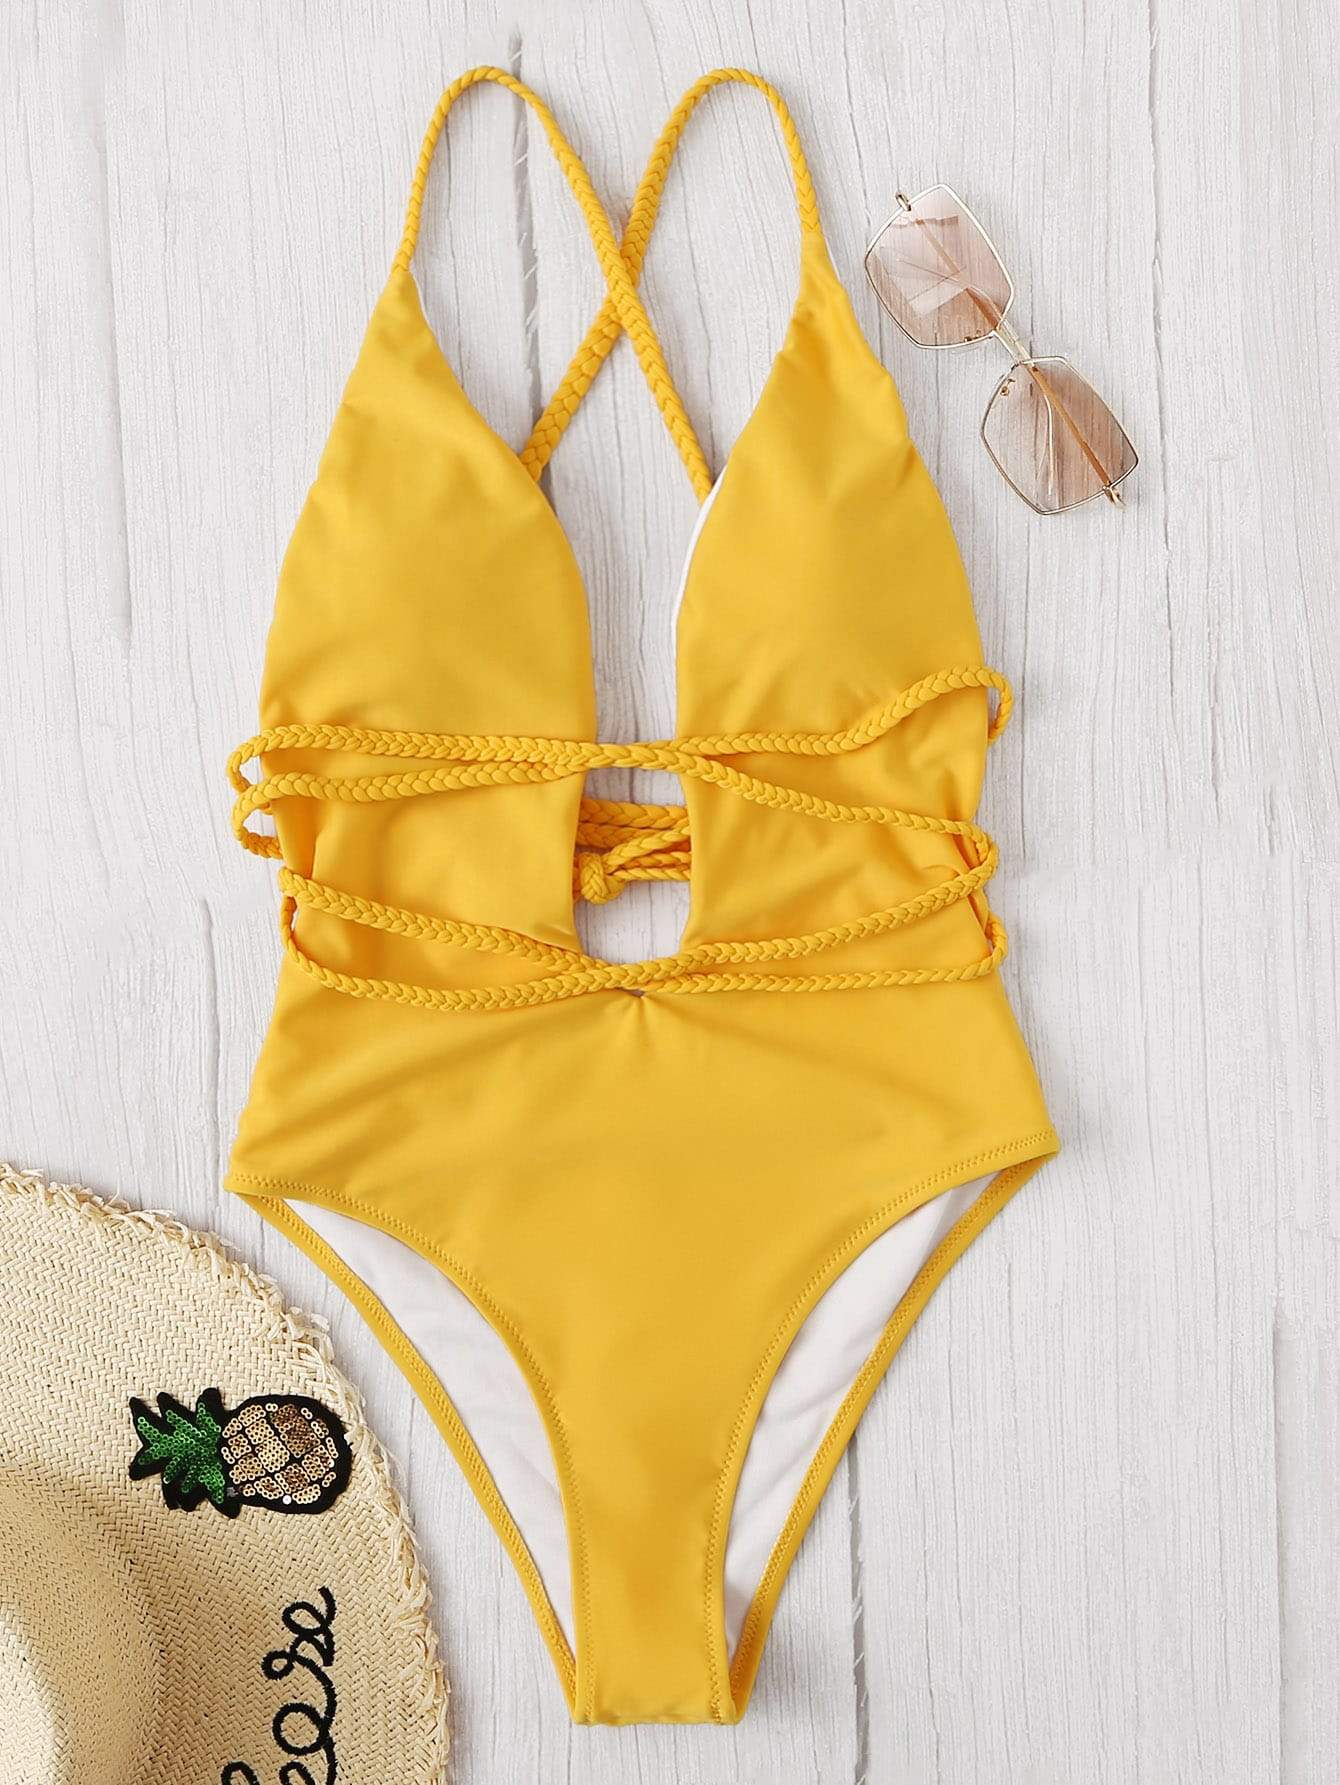 ed9c00f0e624b U-plunge Criss Cross Backless One Piece Yellow Swimsuit FREE SHIP in ...